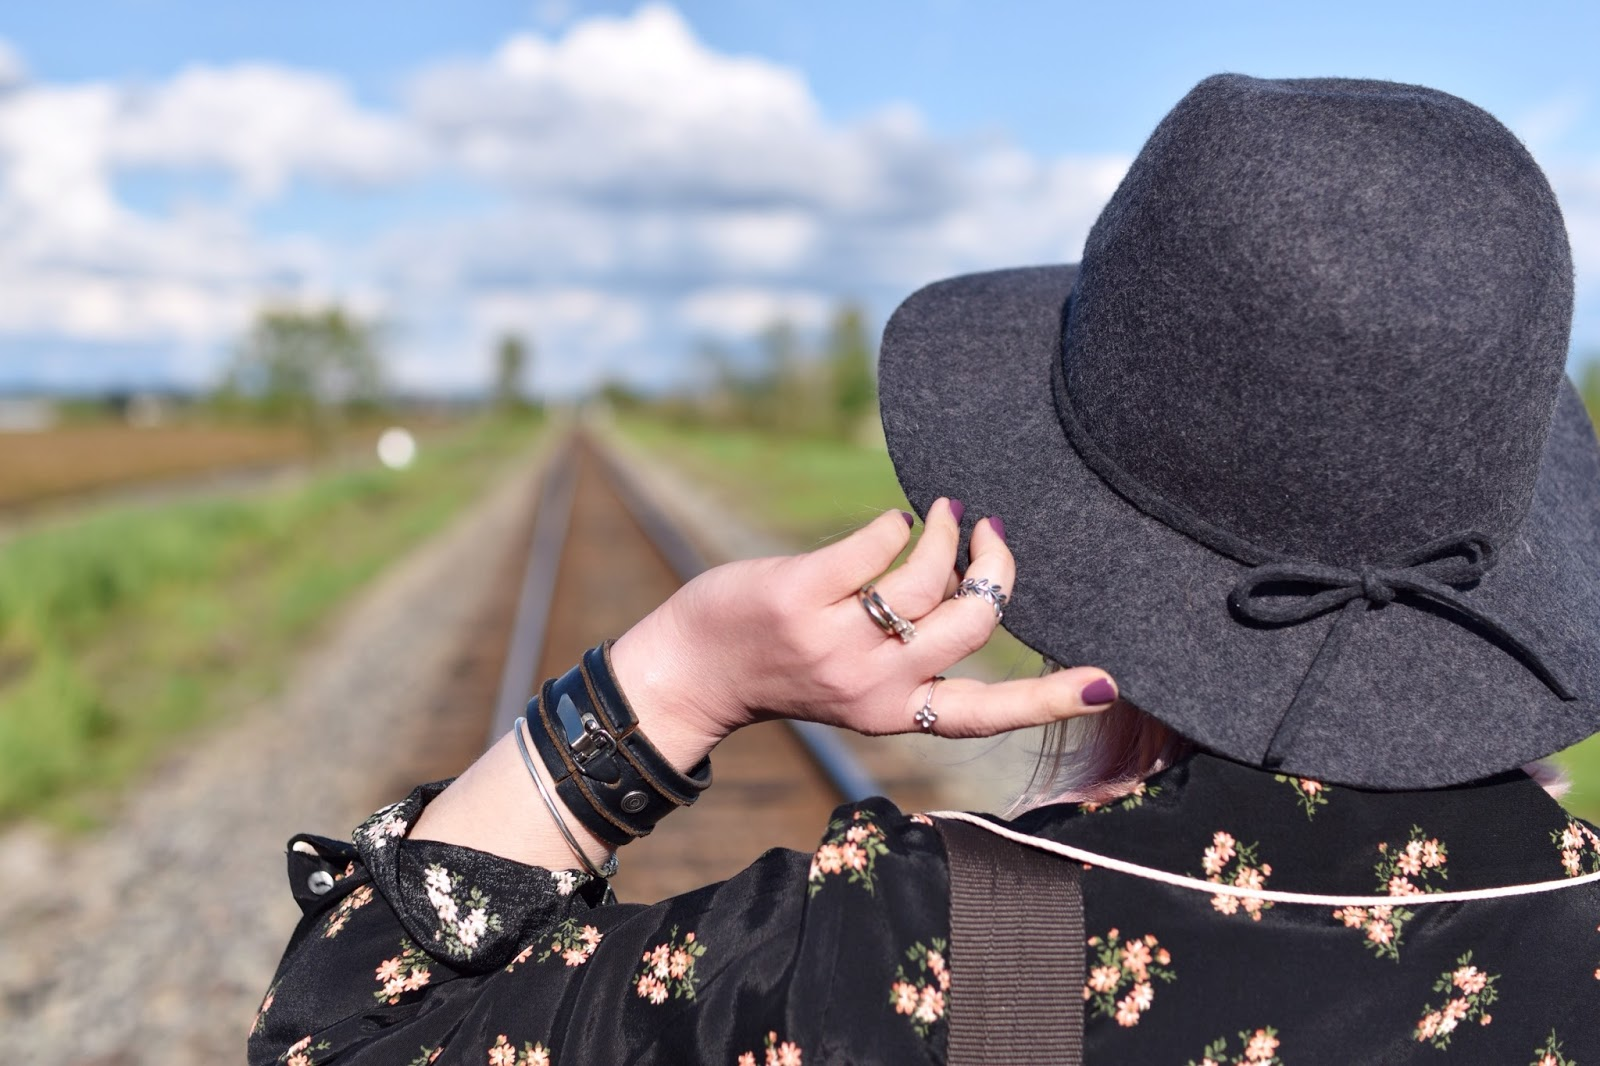 Monika Faulkner outfit inspiration - floral shirtdress, floppy hat